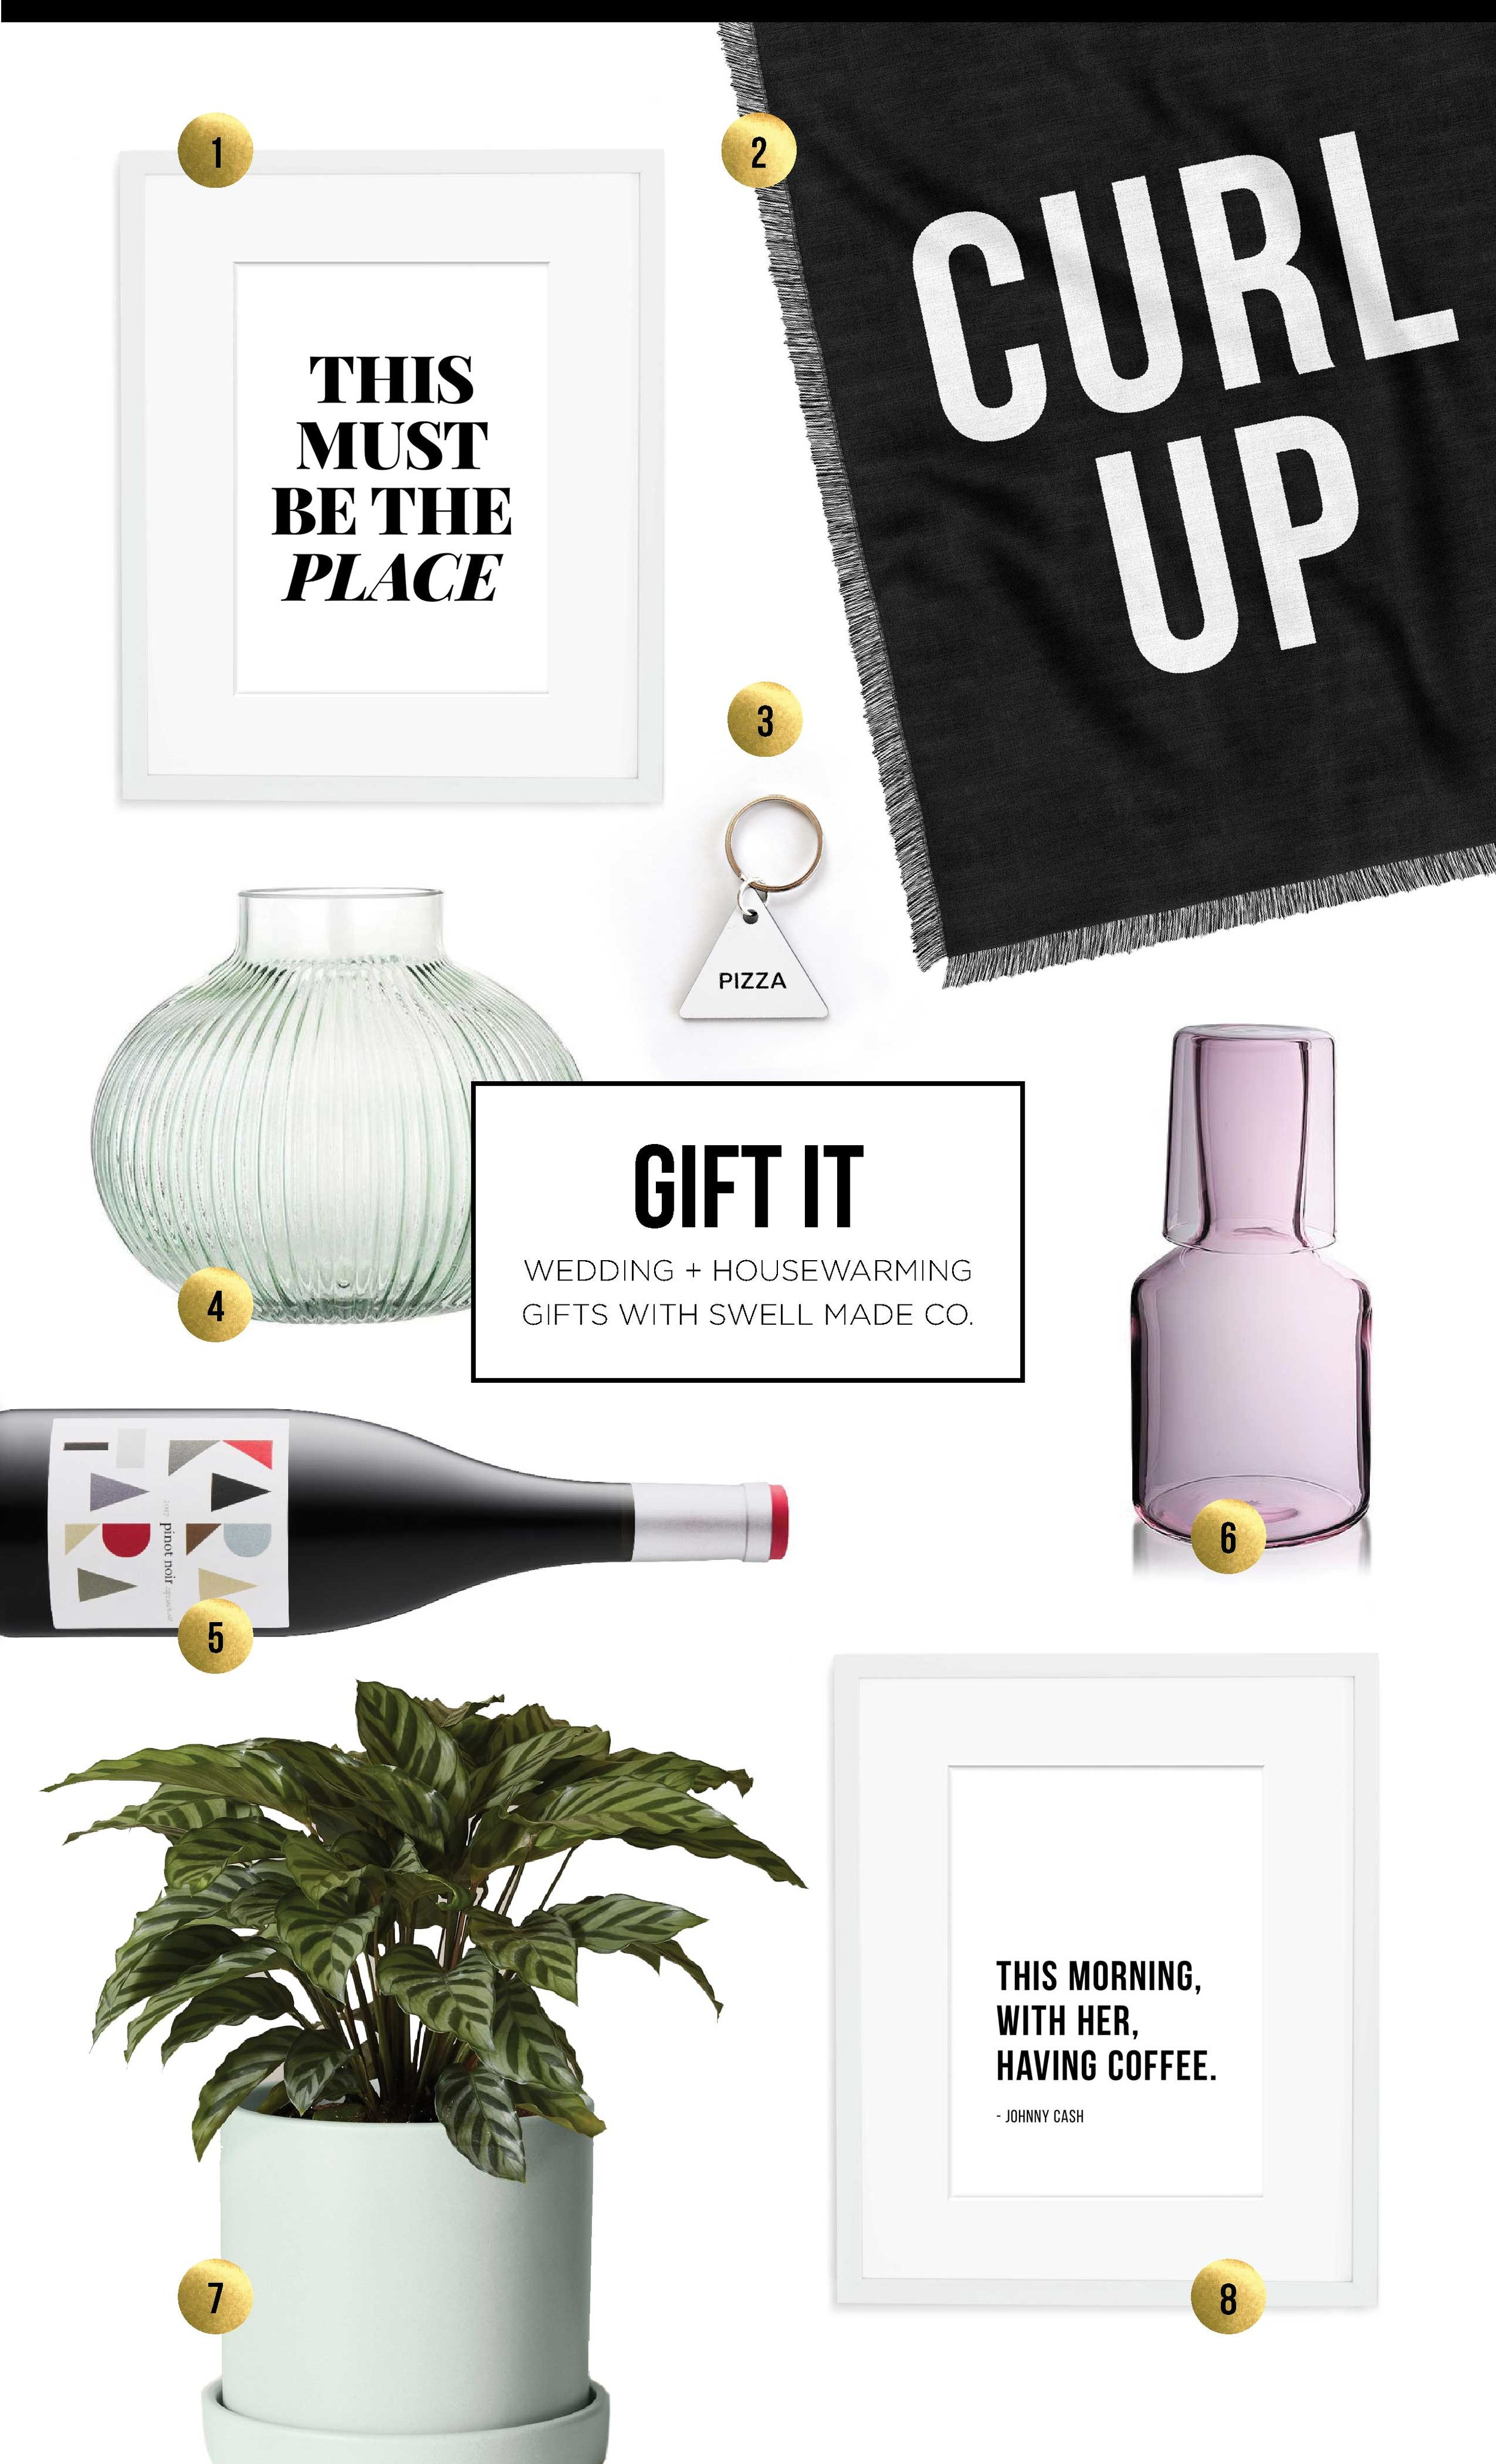 Gift It | Gift ideas for wedding and housewarming season with Swell Made Co.